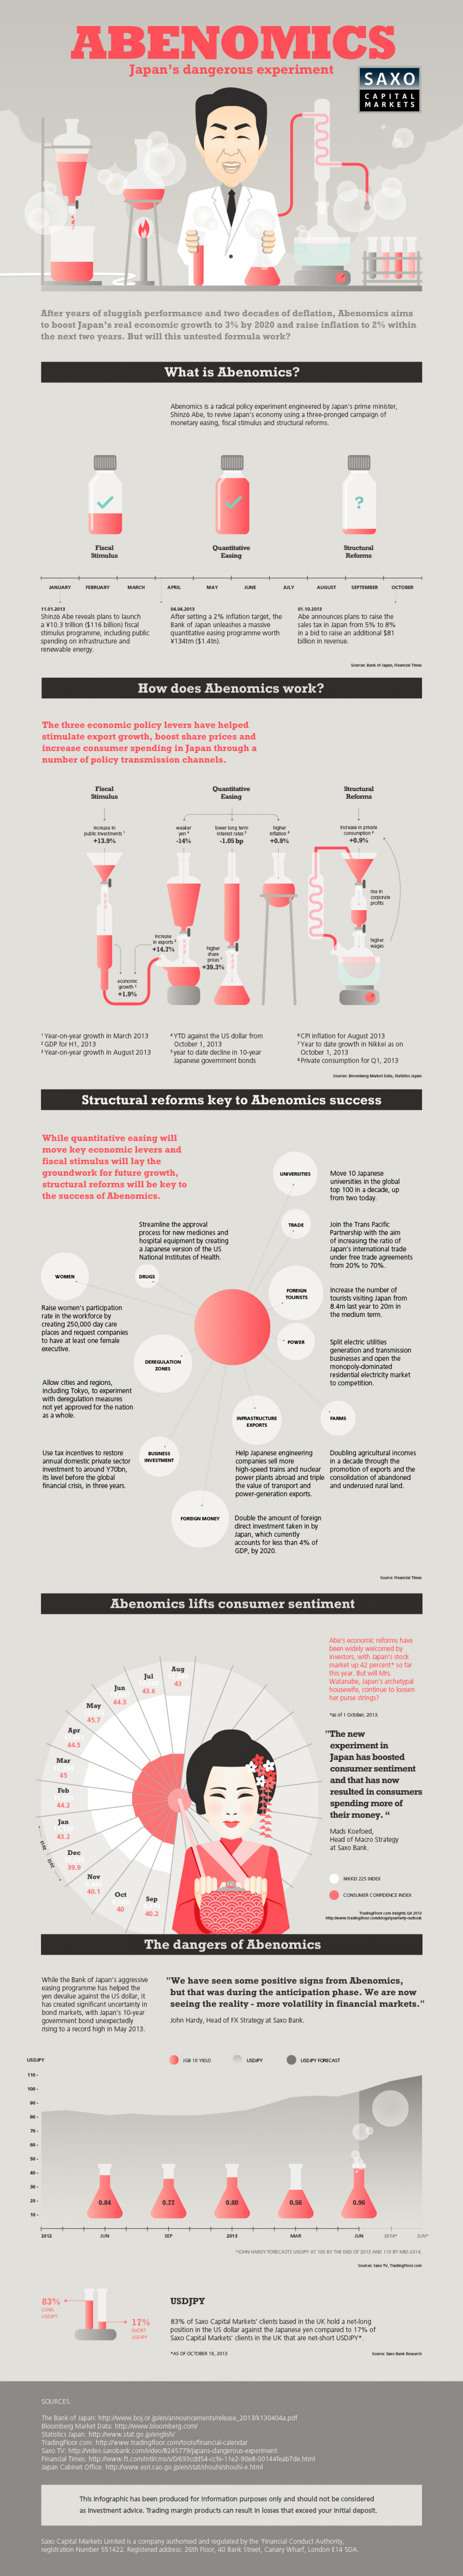 Can Abenomics save the Japanese economy? Infographic